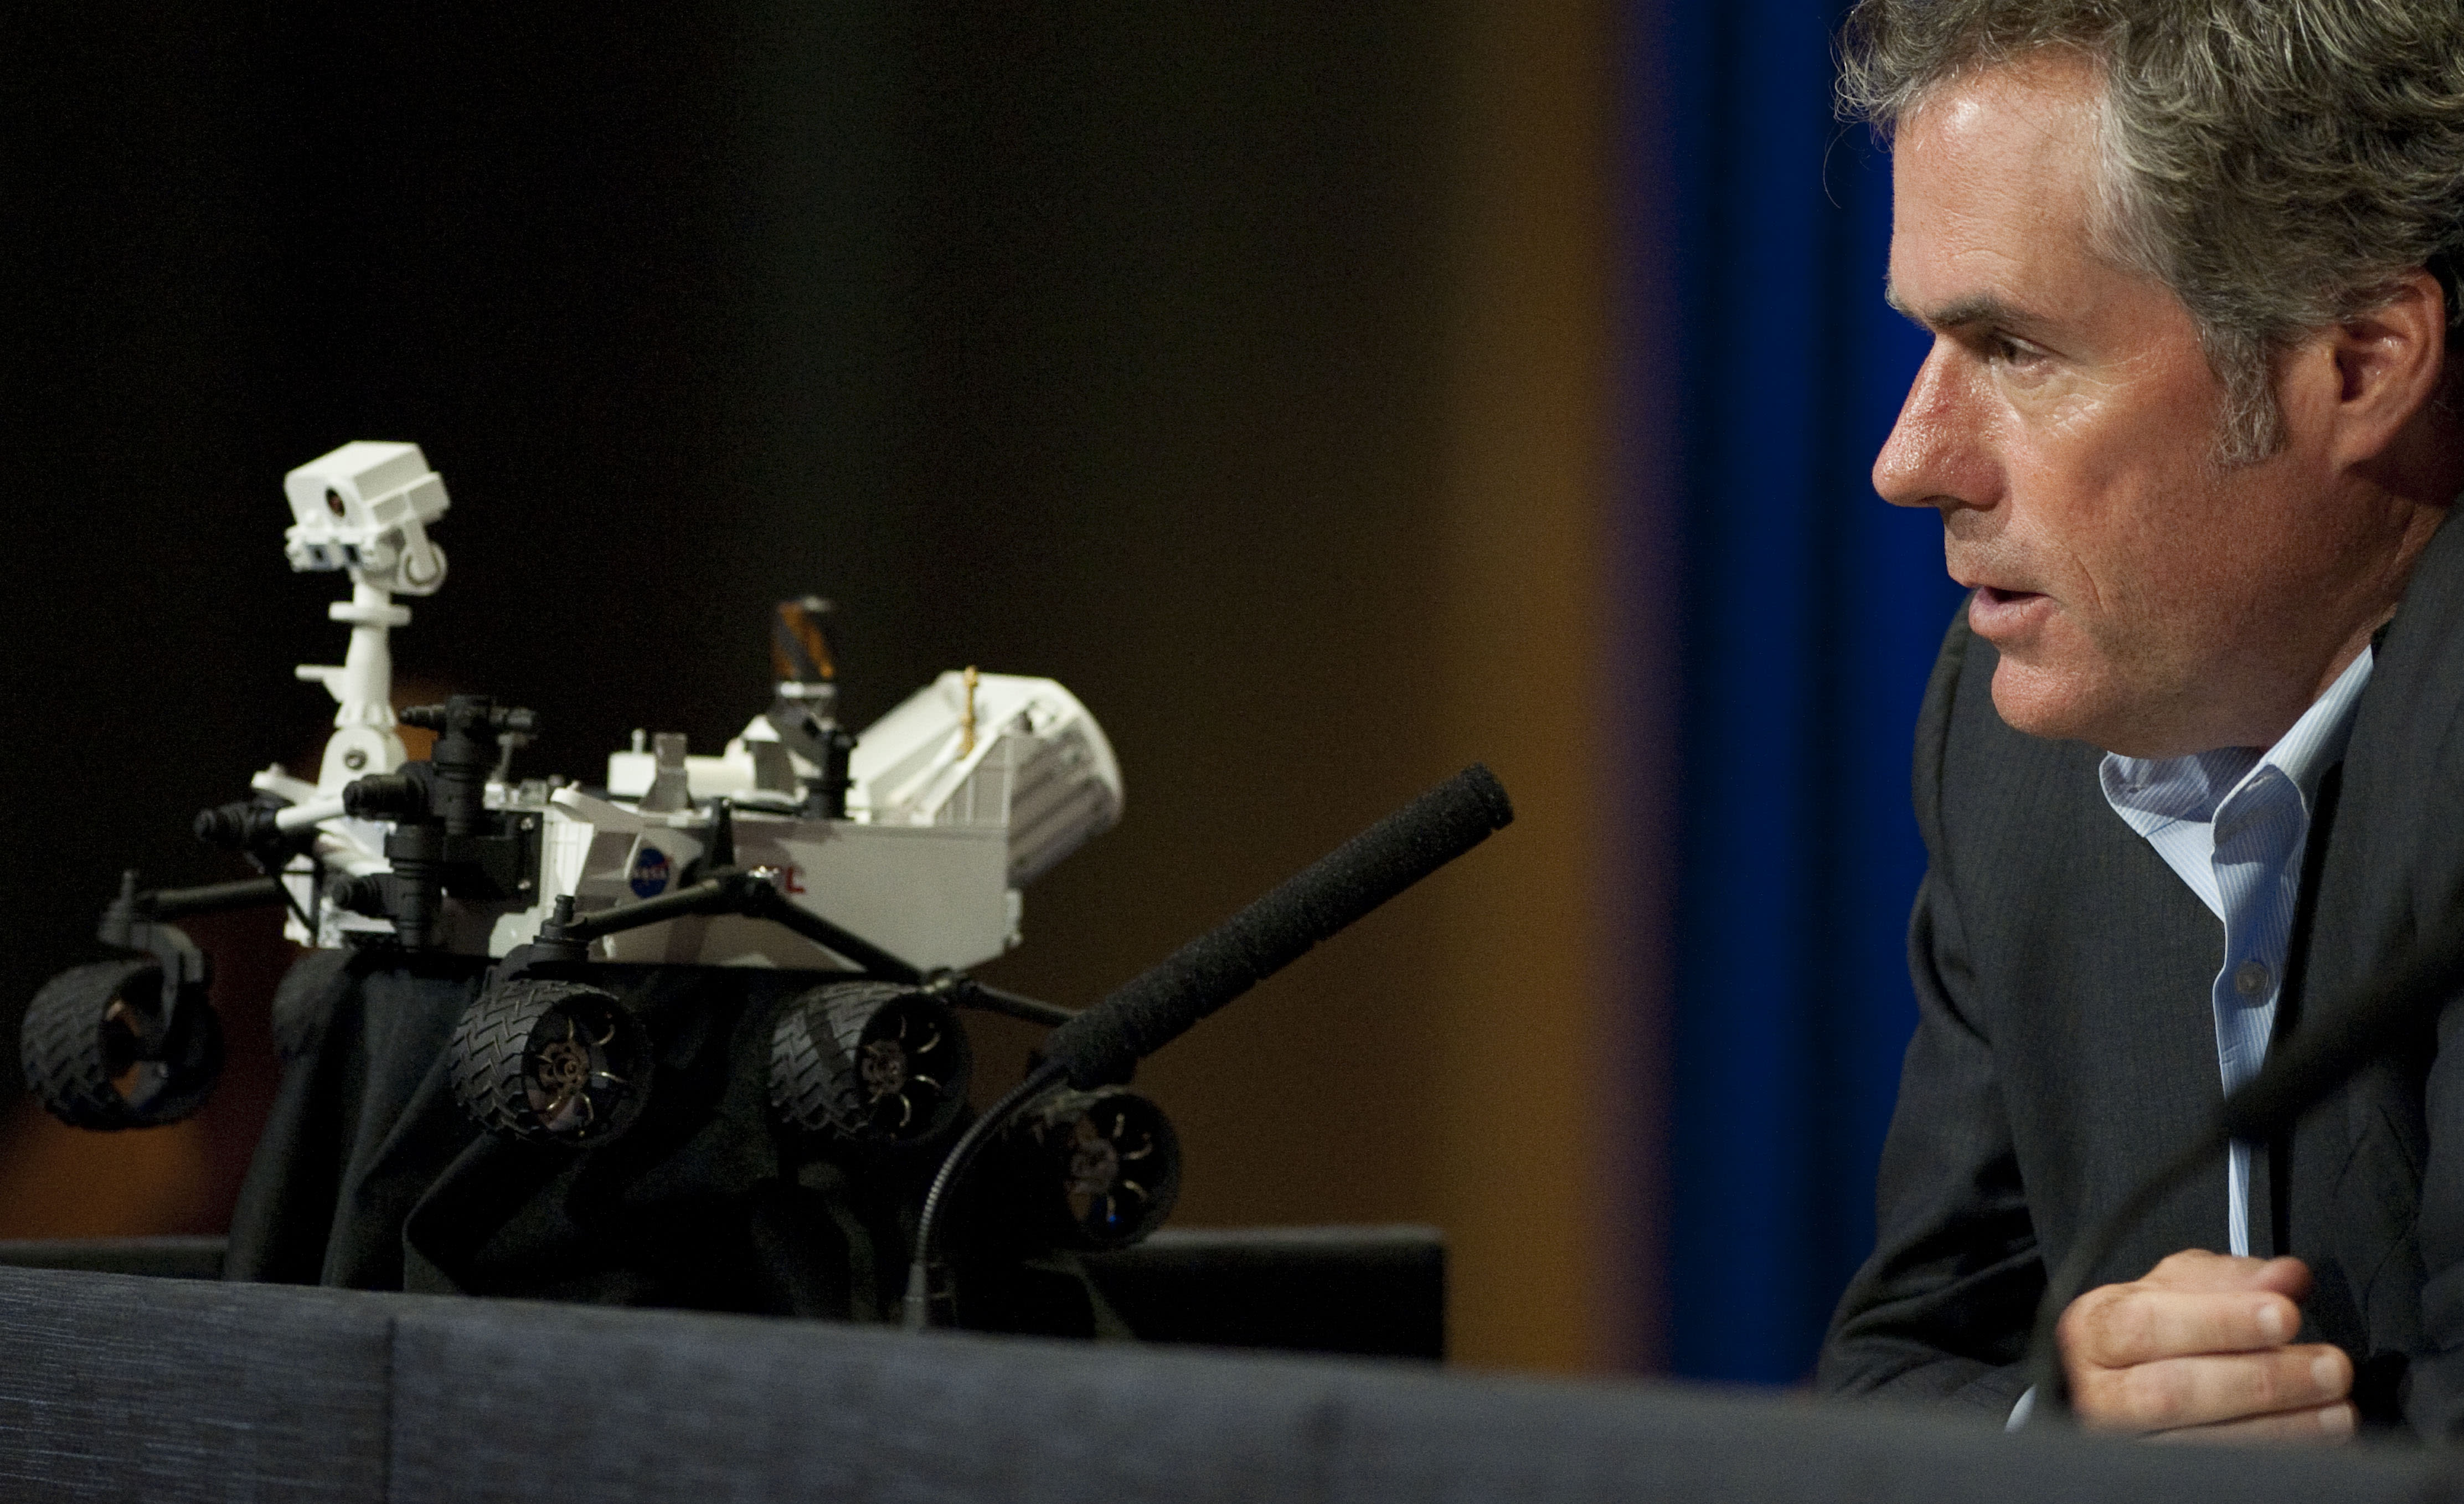 Michael Watkins, MSL mission manager, Jet Propulsion Laboratory, answers questions during an update news conference on Curiosity Mars Rover at NASA's Jet Propulsion Laboratory in Pasadena, Calif., Thursday, Aug. 9, 2012. (AP Photo/Grant Hindsley)